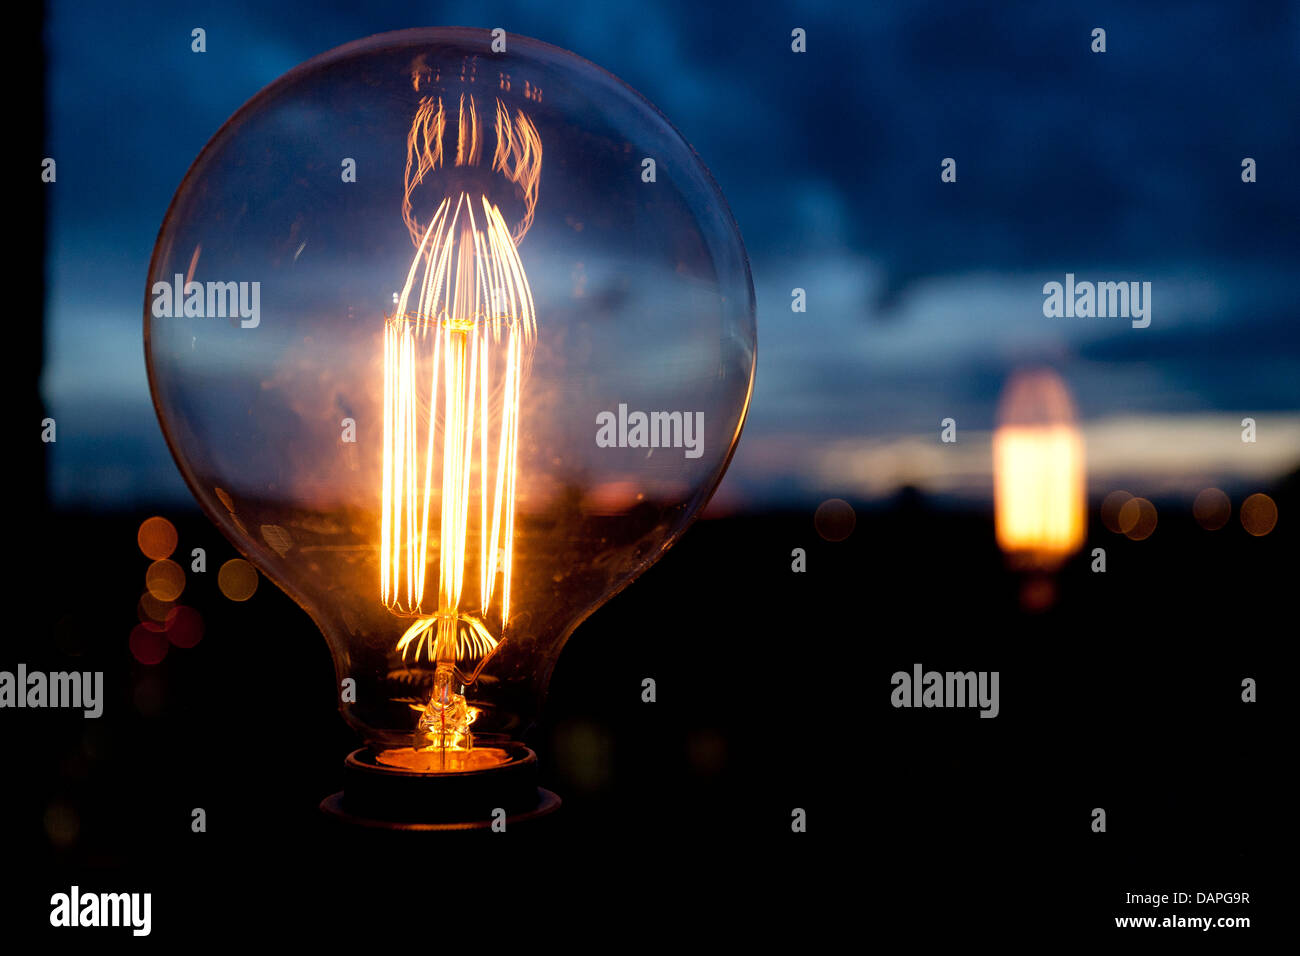 Electric light stockfotos electric light bilder alamy for Runde lampe